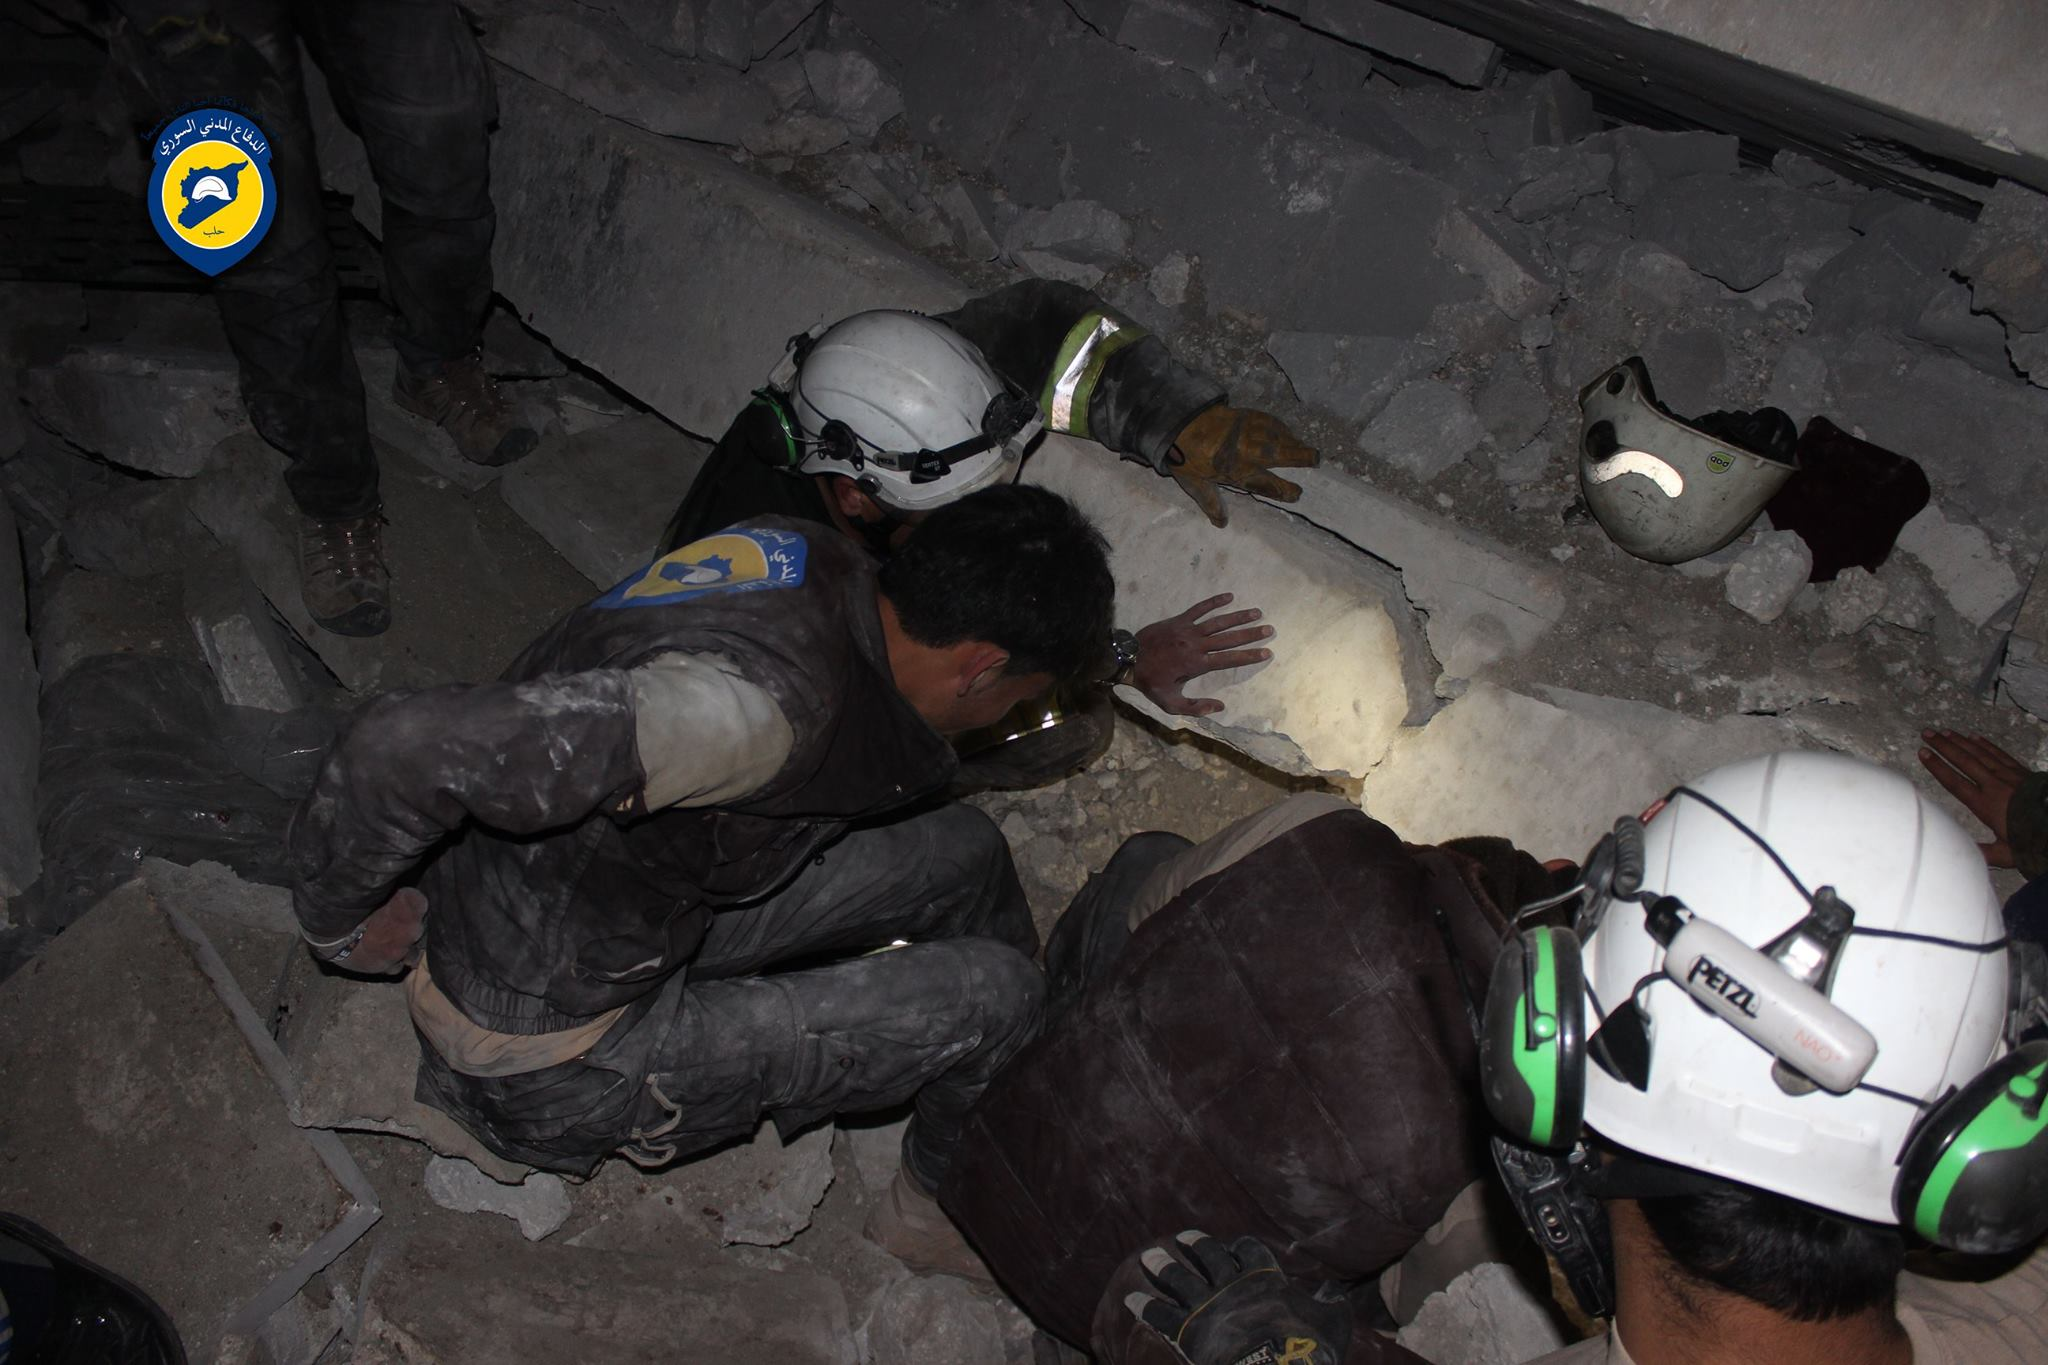 White Helmets Aleppo led the rescue efforts at al Jina